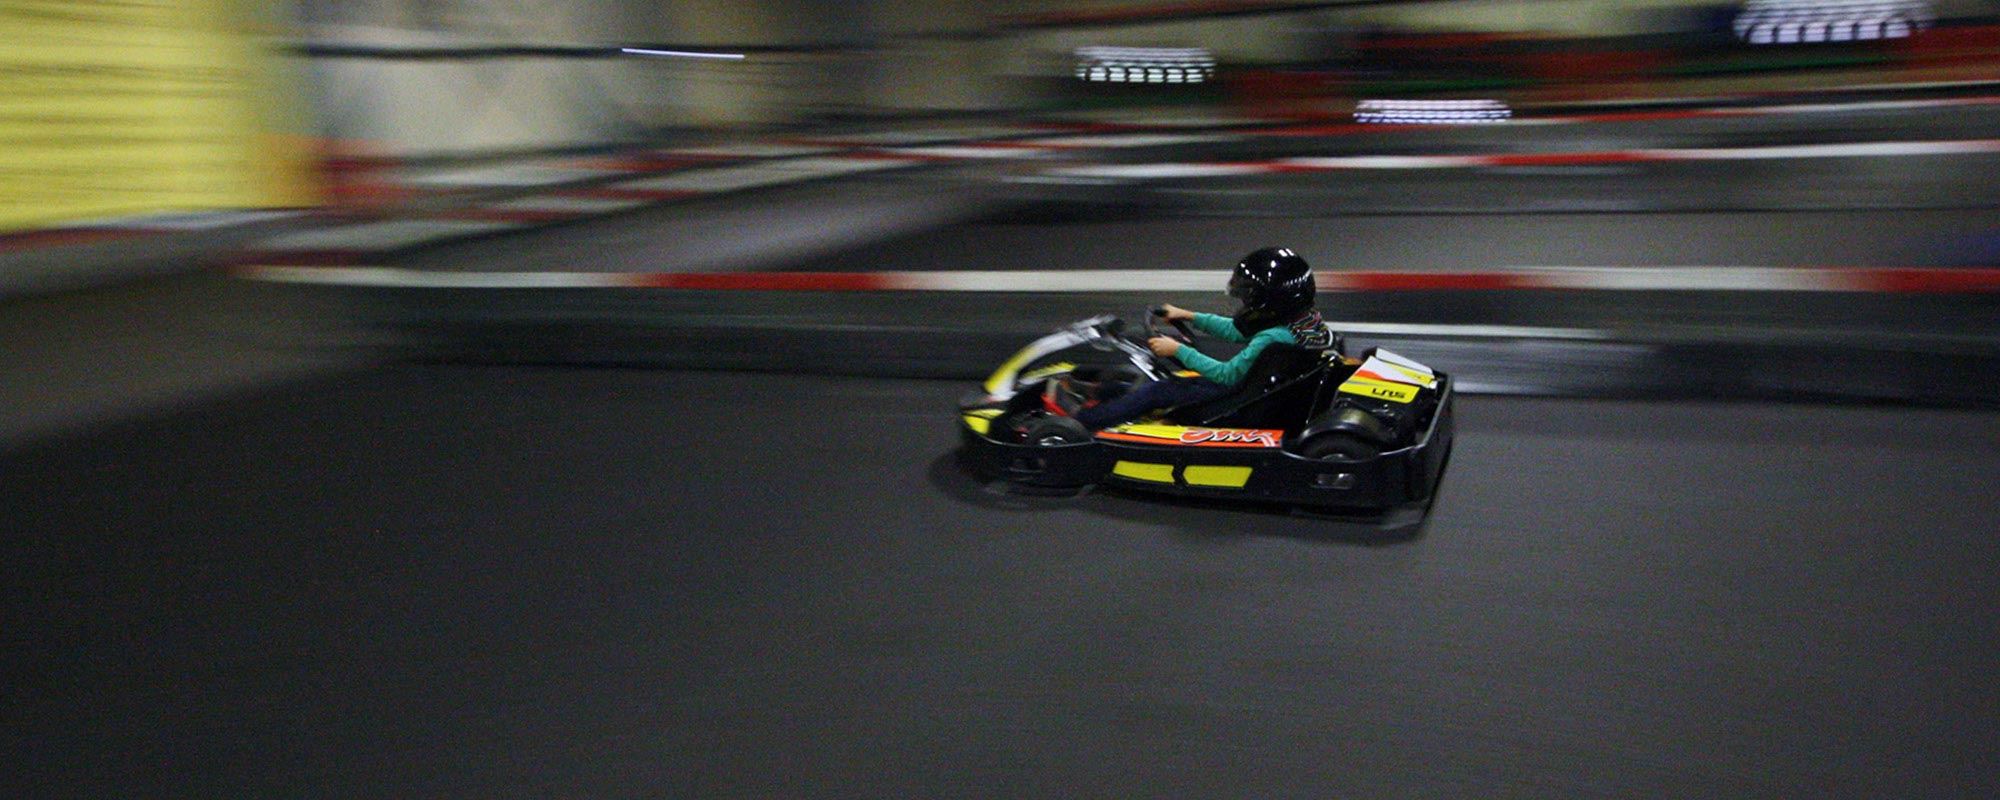 ebafkc-juniorkarting-2000x800-10